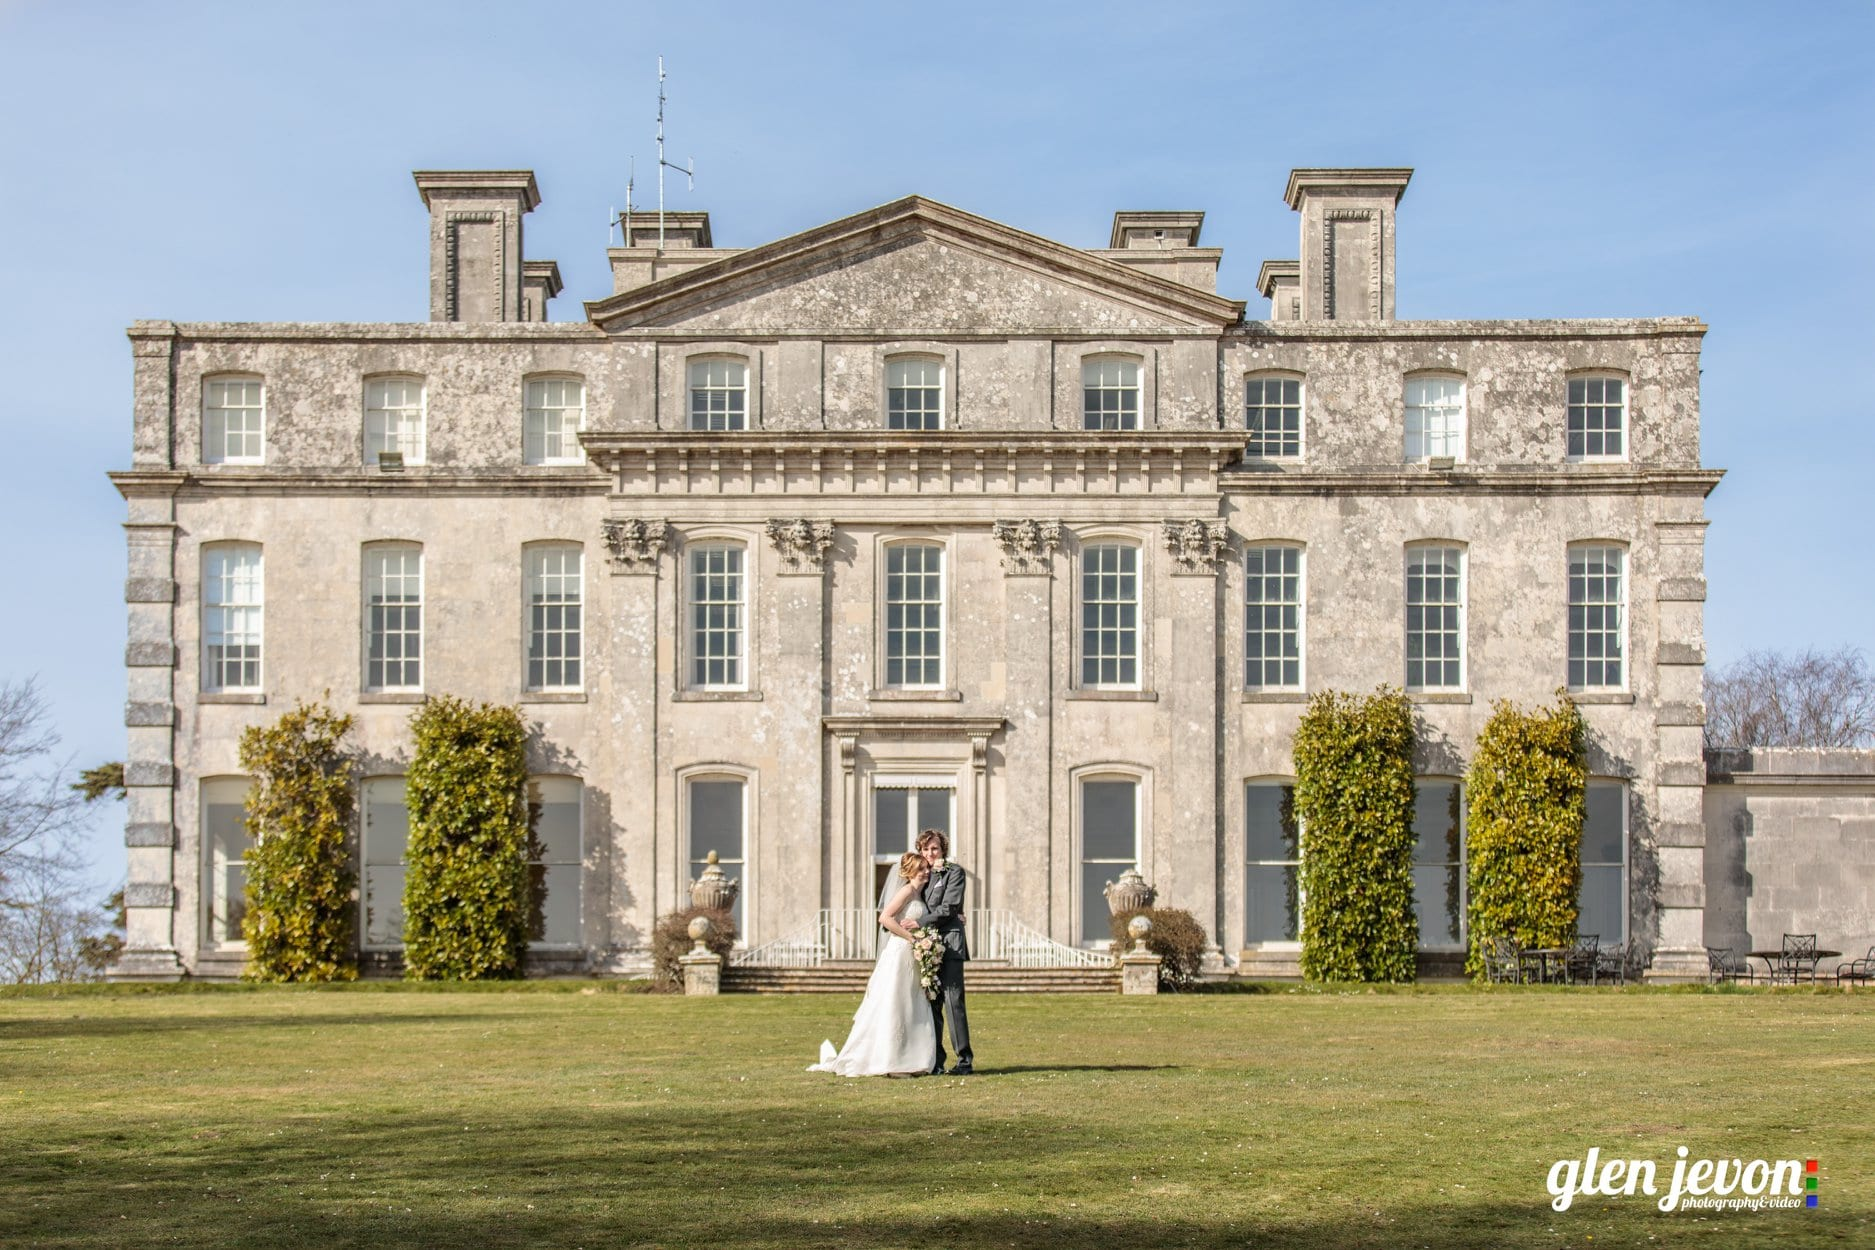 Bride and groom stood on the lawn with the Main House in the background on a sunny day